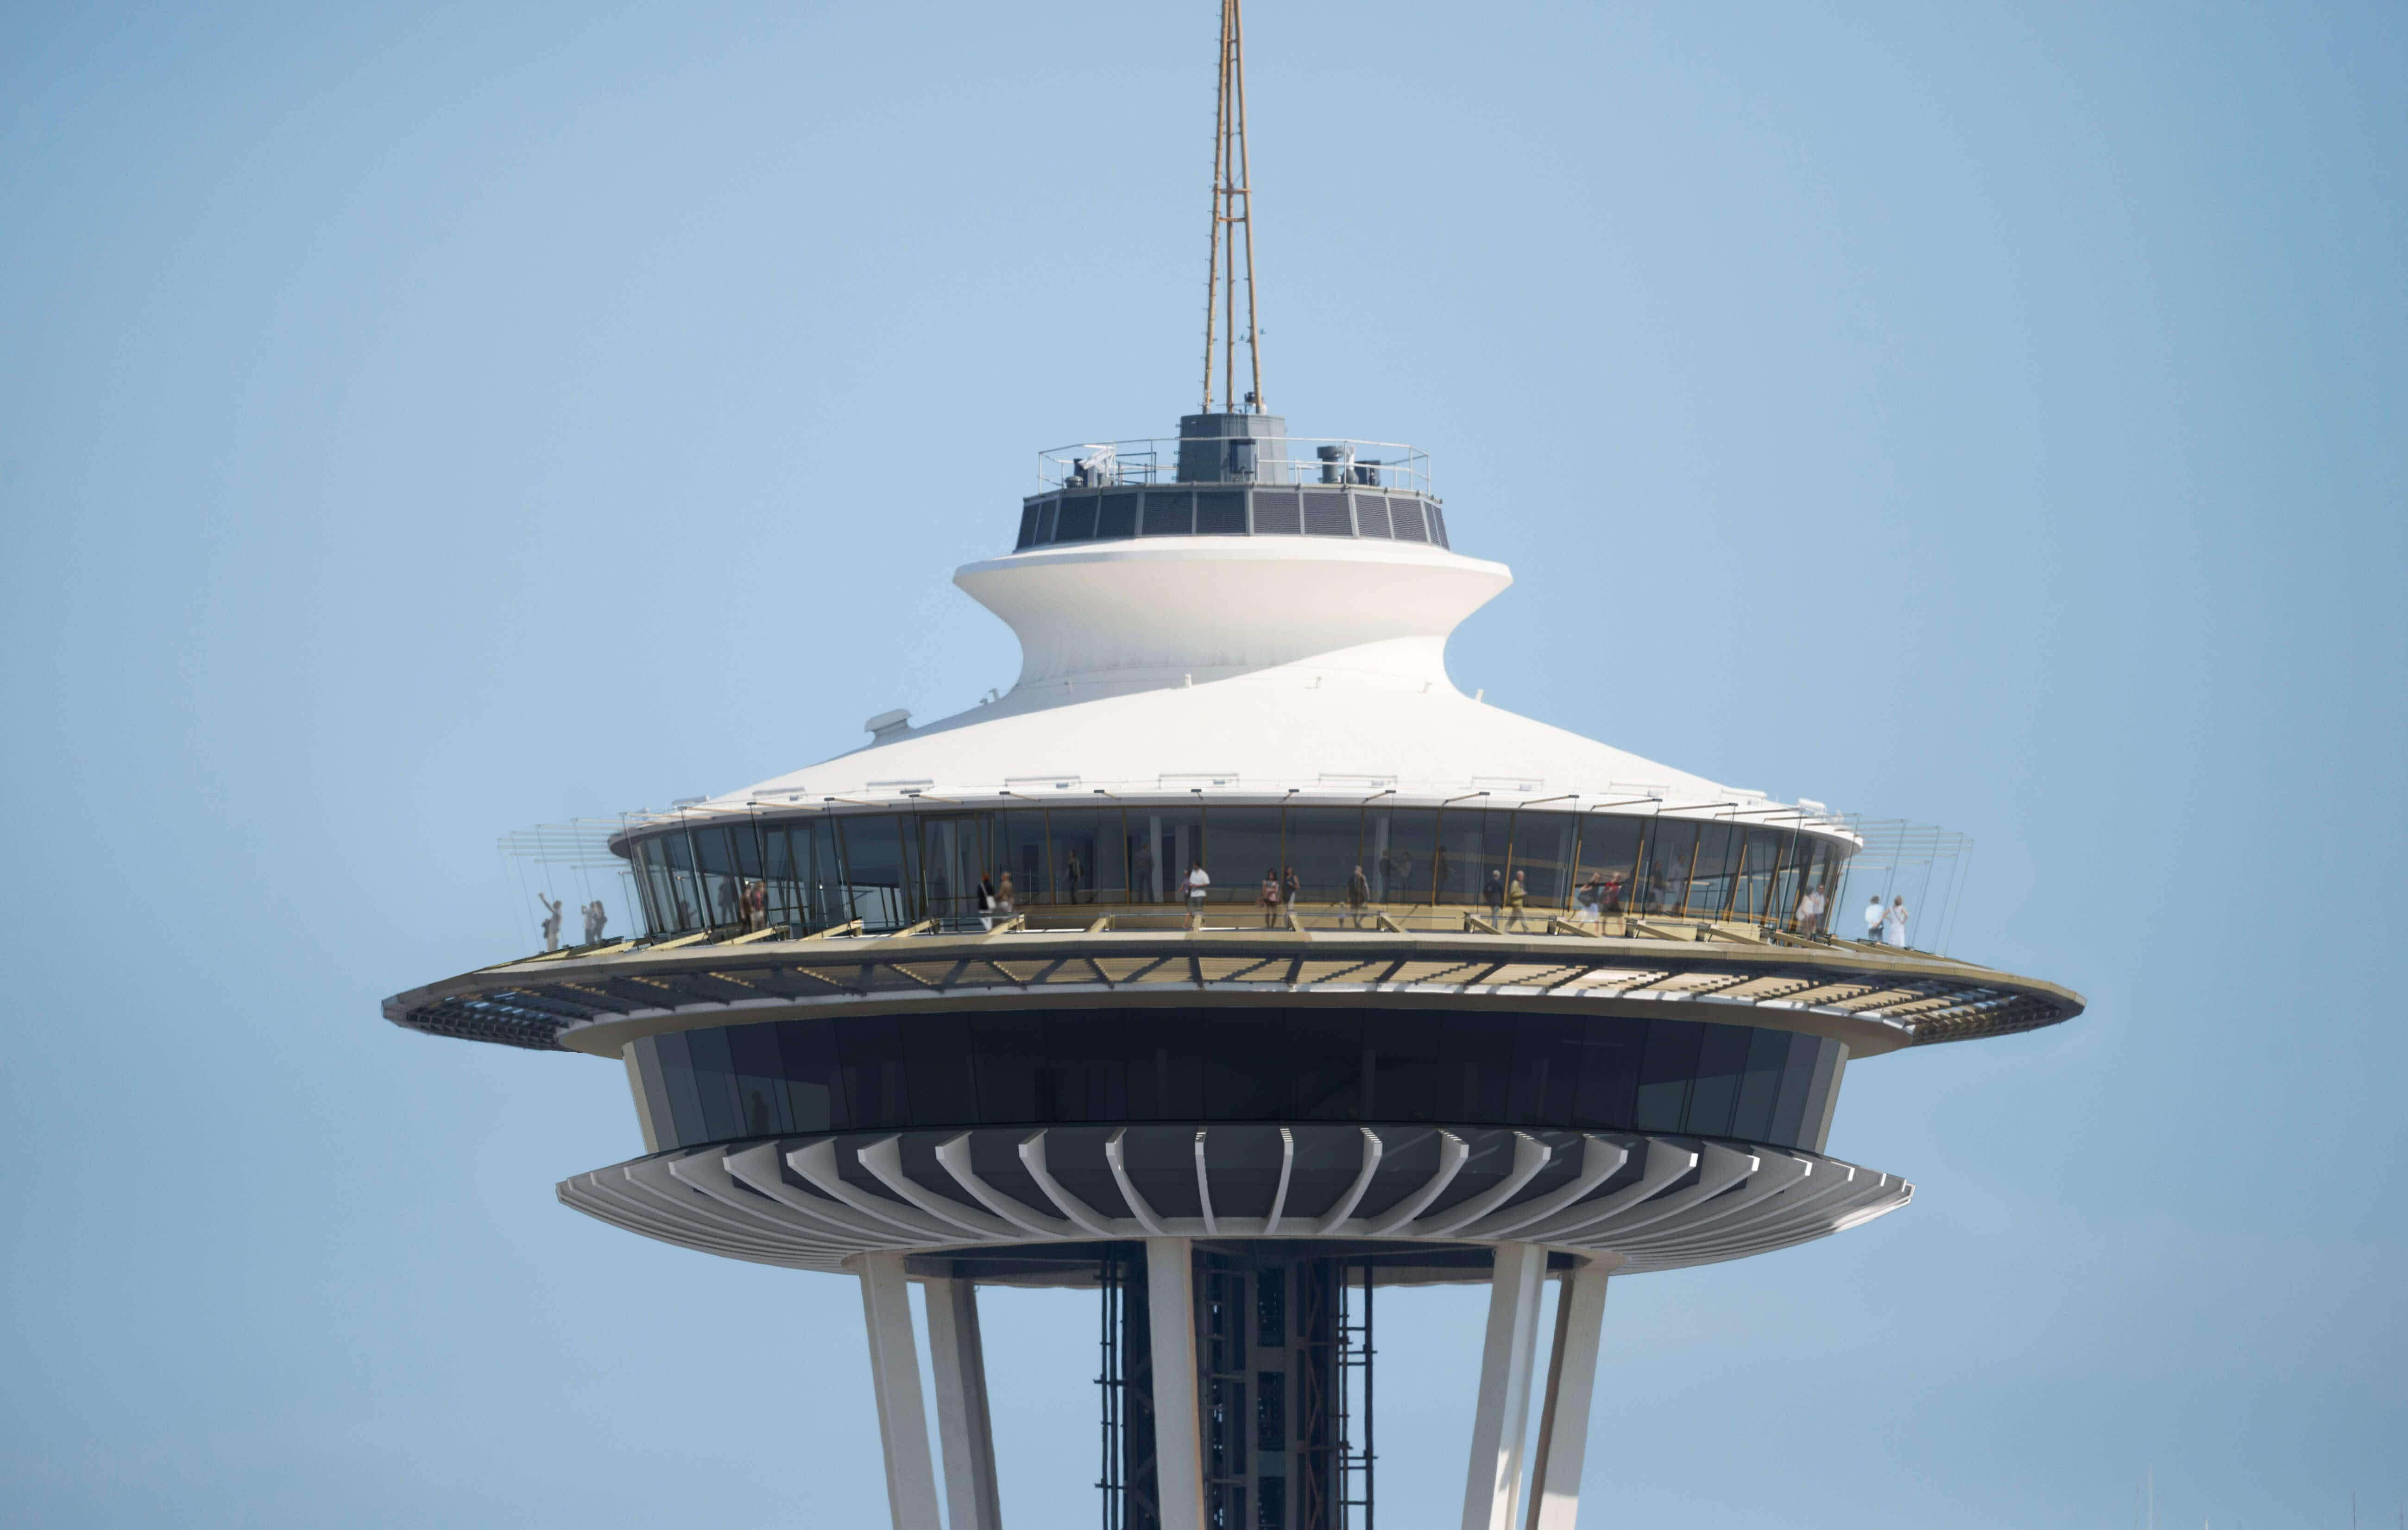 Seattle's iconic Space Needle set for a $100 million revamp with vertigo-inducing glass floors